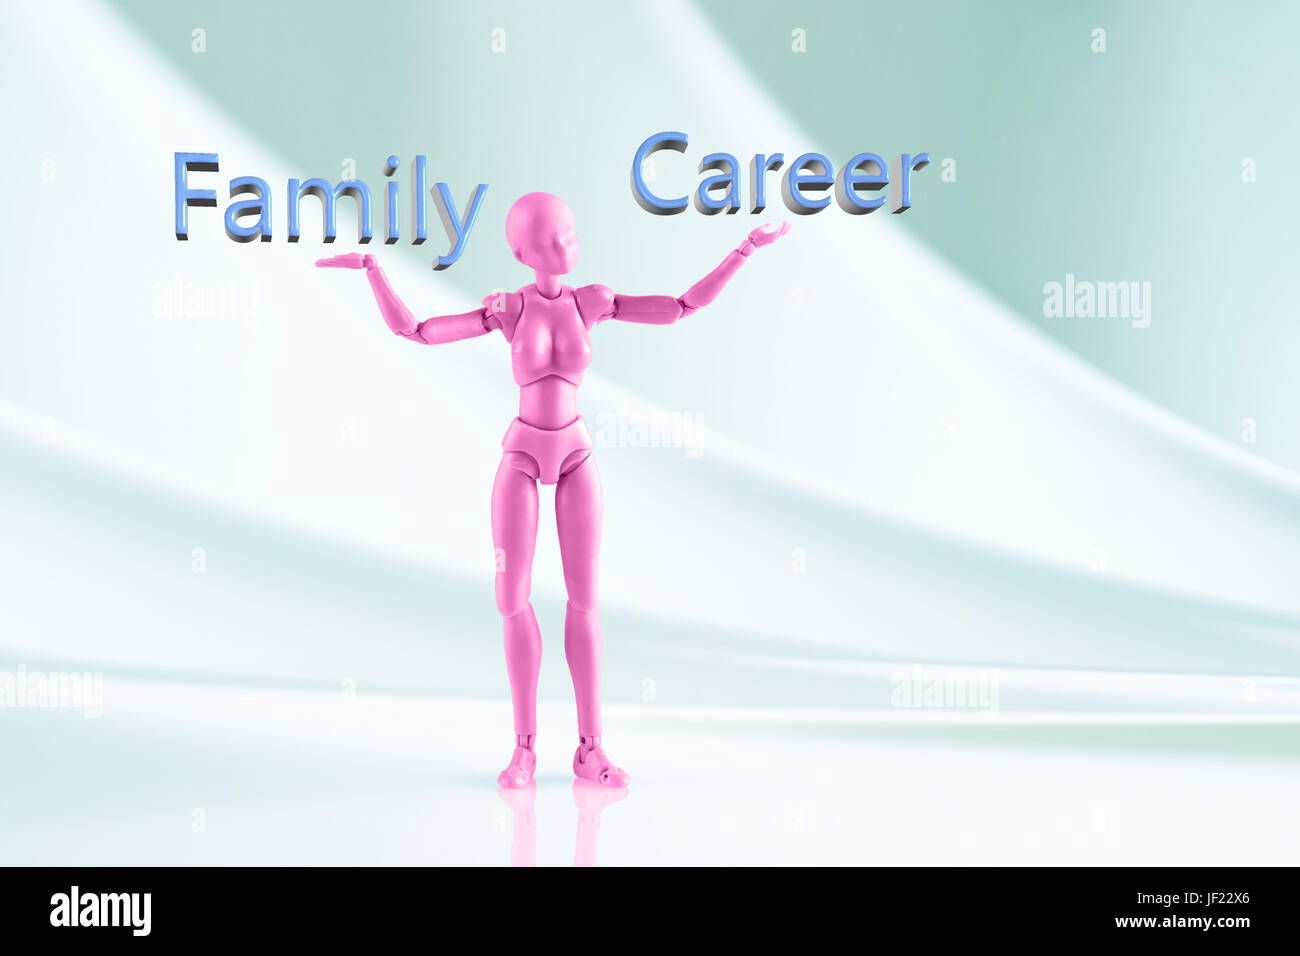 Pink female figurine standing on beautiful fabric background with words Family and Career. Concept of choice between Stock Photo